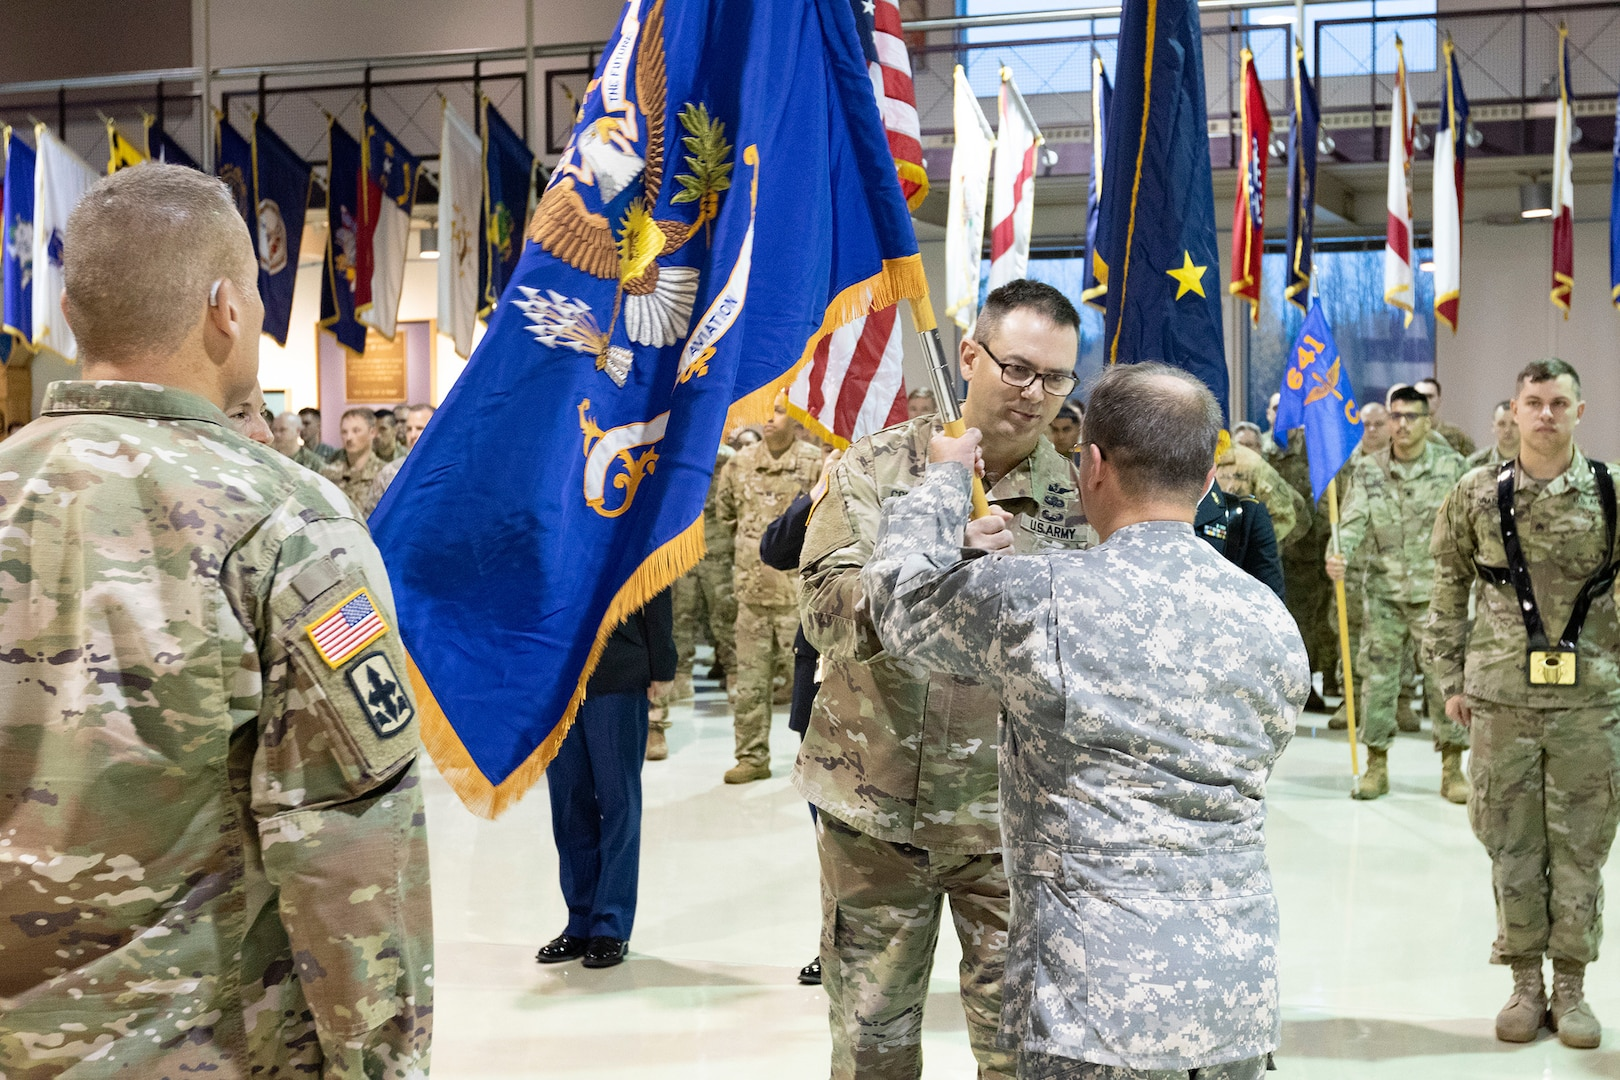 1-207th Arctic Eagles clutch on to new commander